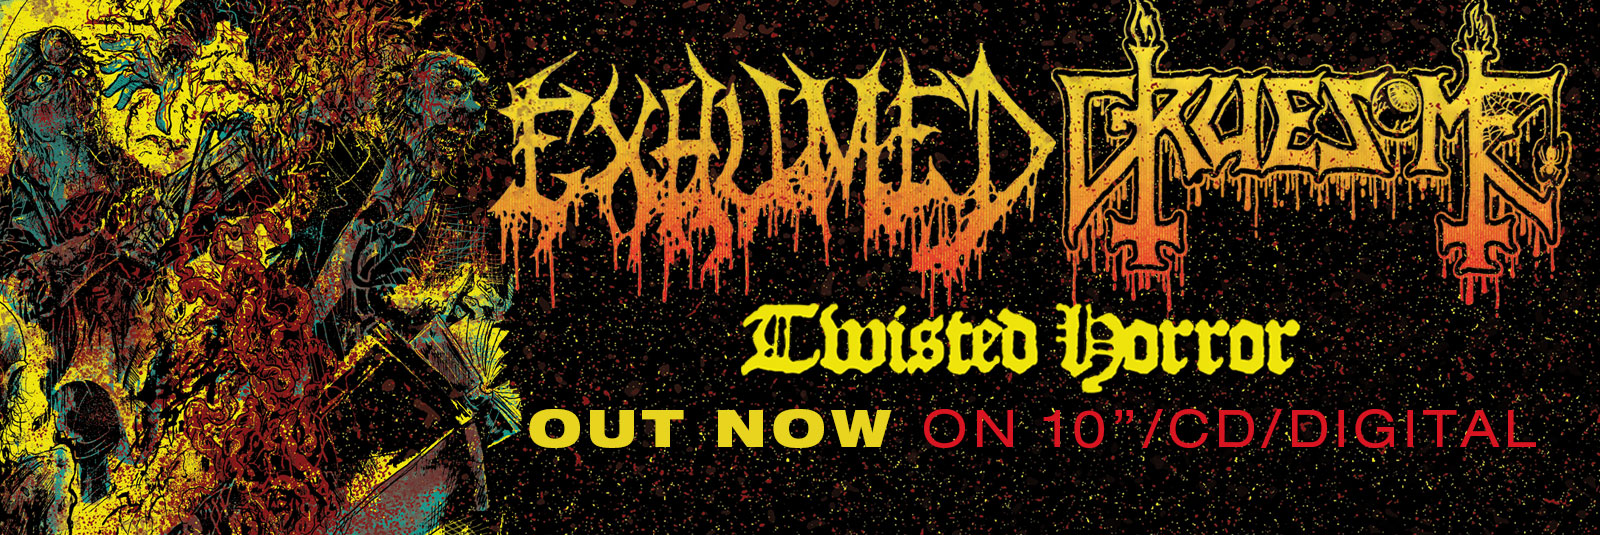 exhumed-gruesome-twisted-horror-death-metal-grindcore-relapse-out-now